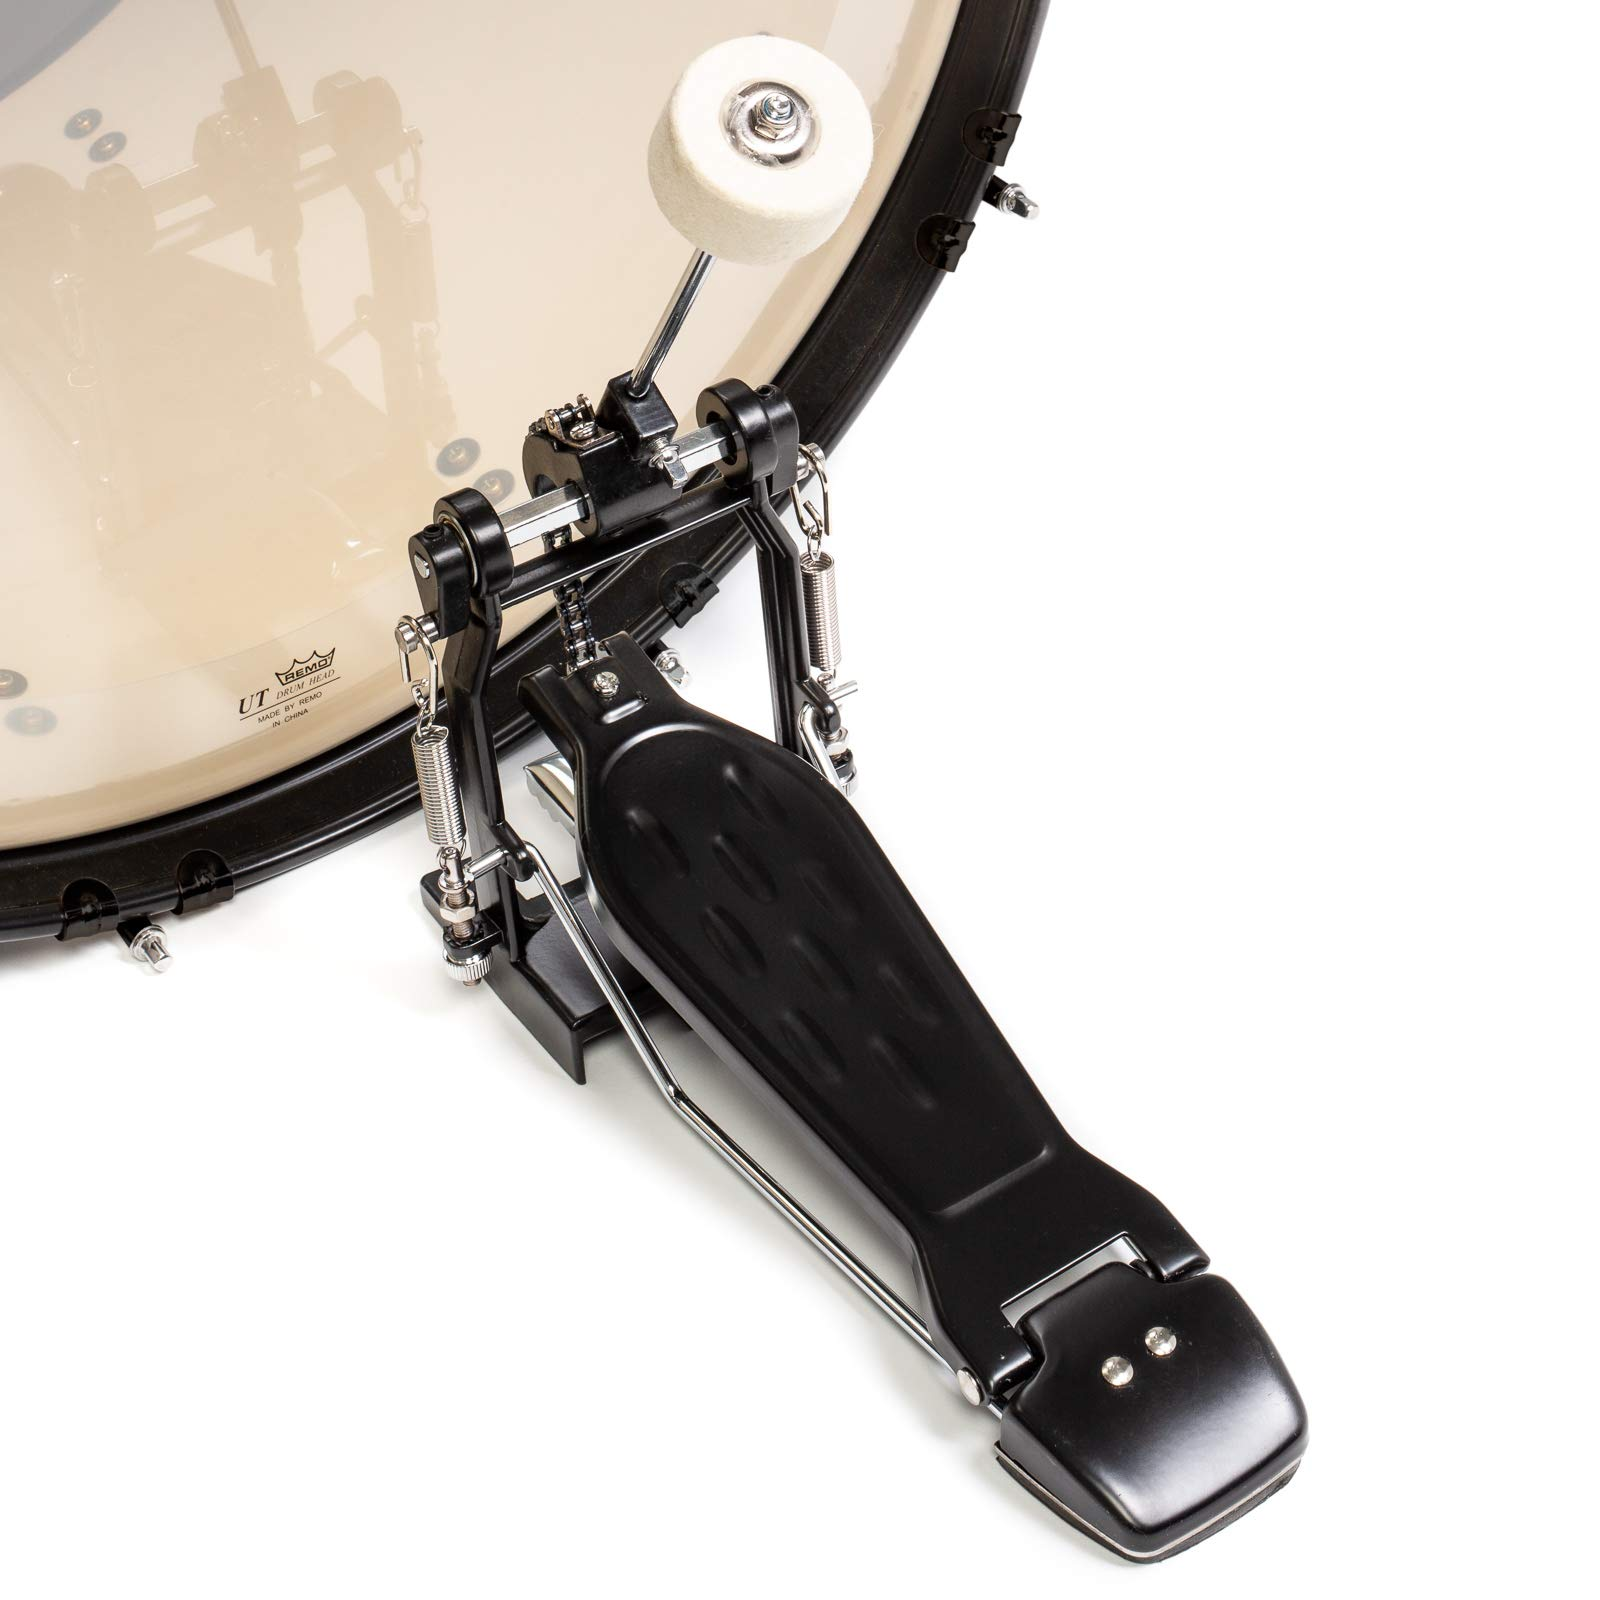 Ashthorpe 5-Piece Complete Full Size Adult Drum Set with Remo Batter Heads - Silver by Ashthorpe (Image #6)